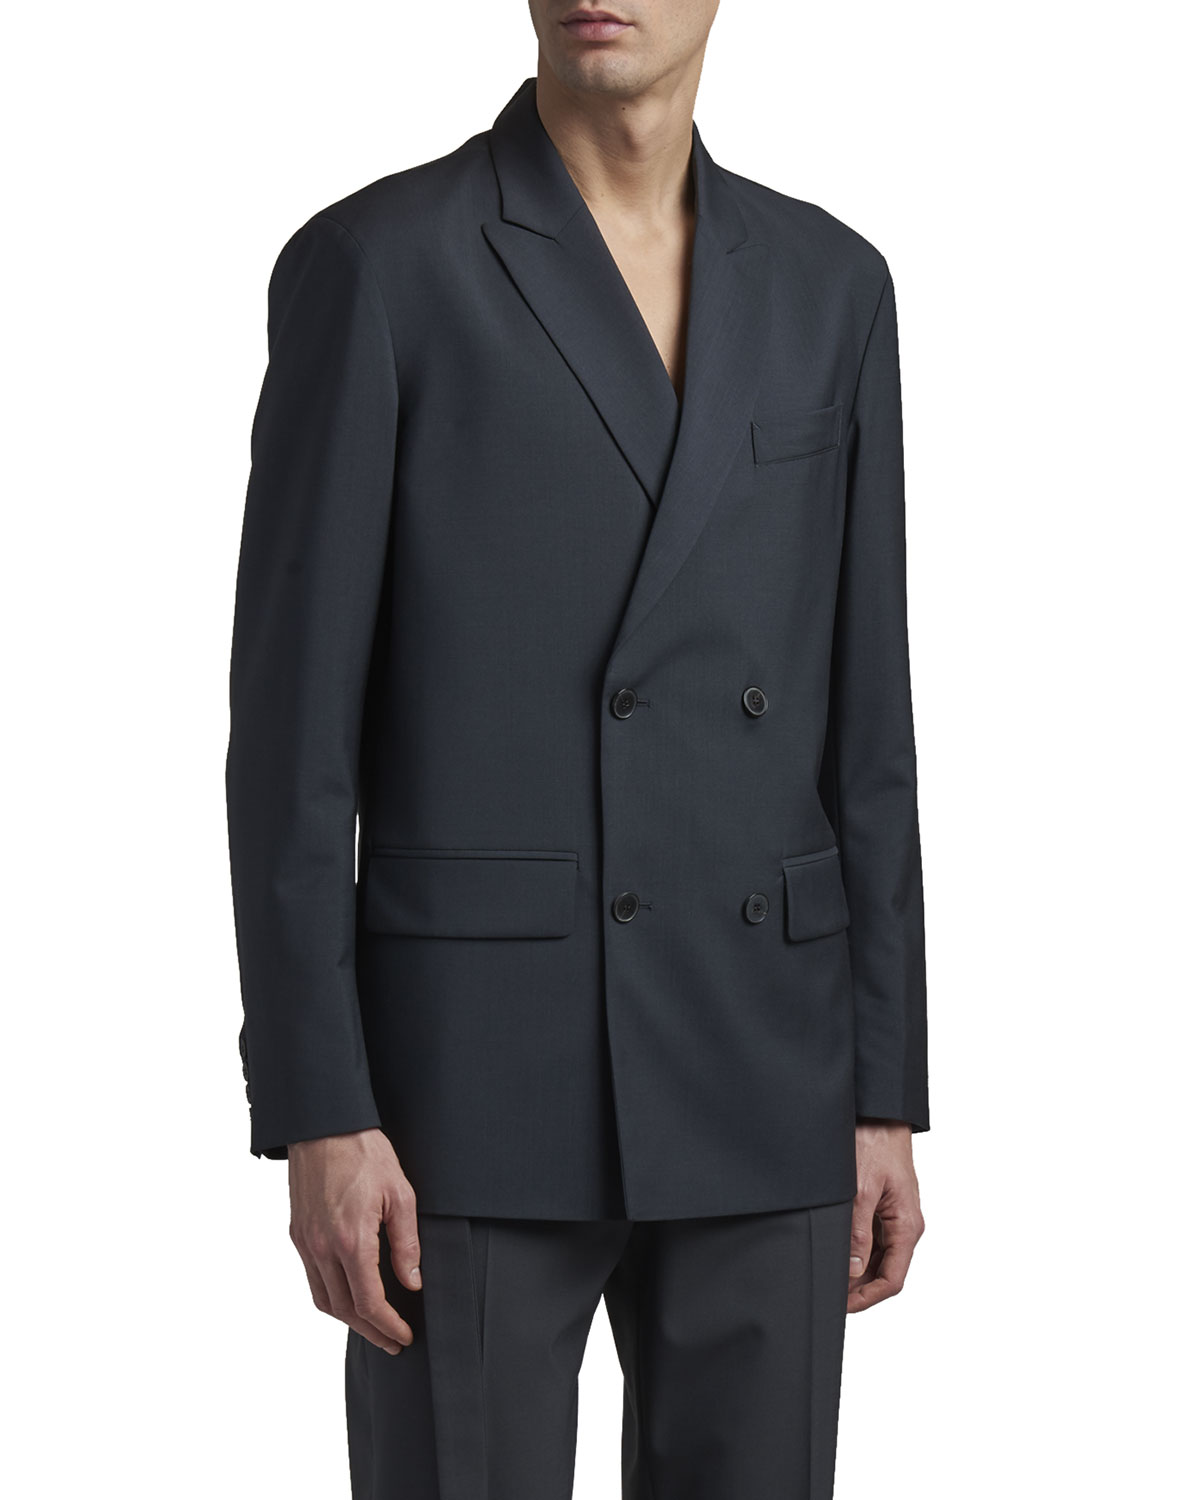 Valentino MEN'S SOLID DOUBLE-BREASTED SPORT JACKET